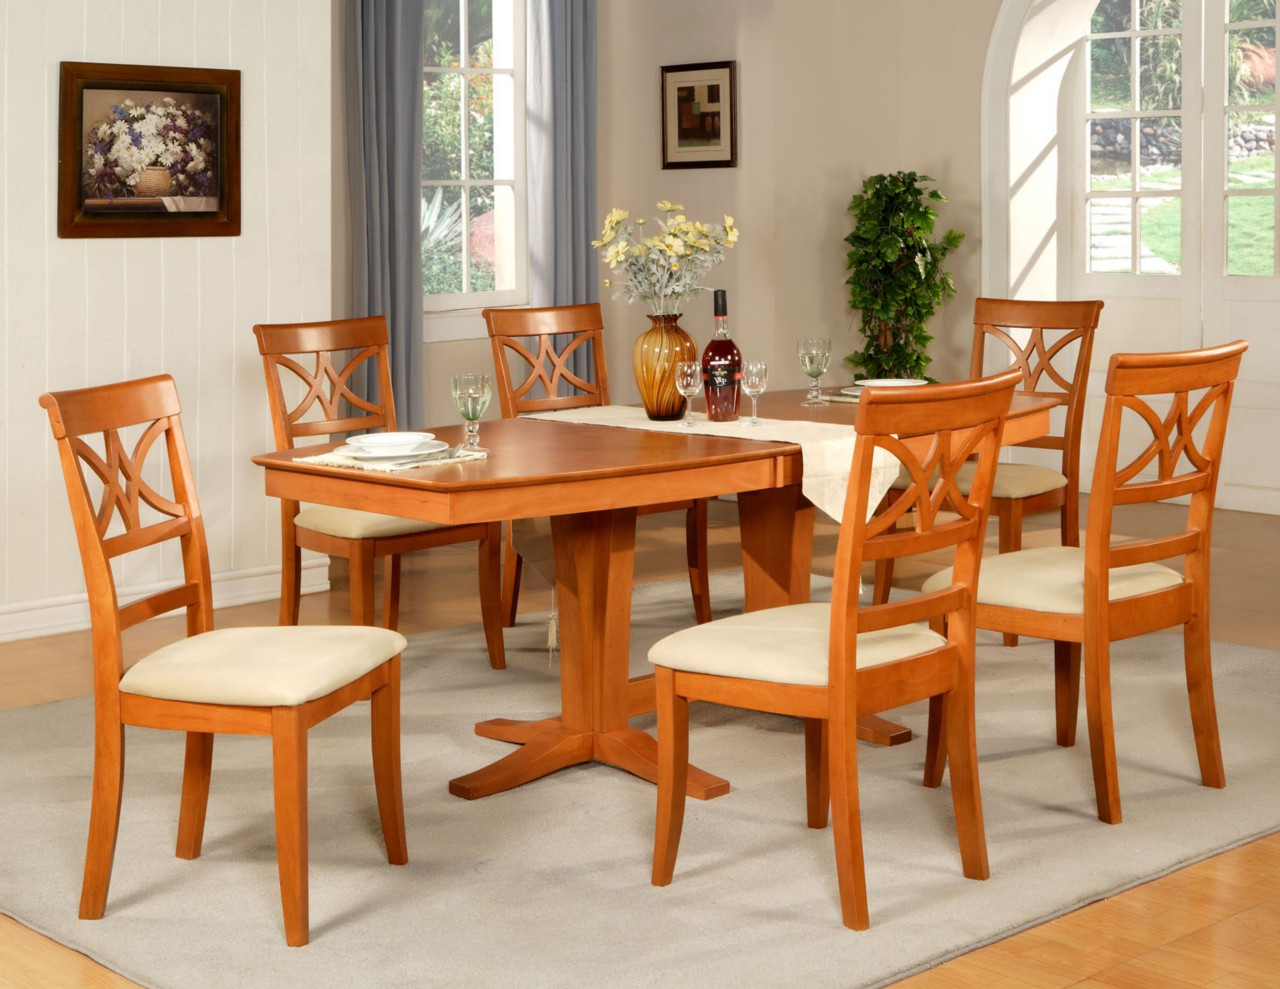 Octagonal shaped dinette dining room table without chair for Dining table without chairs